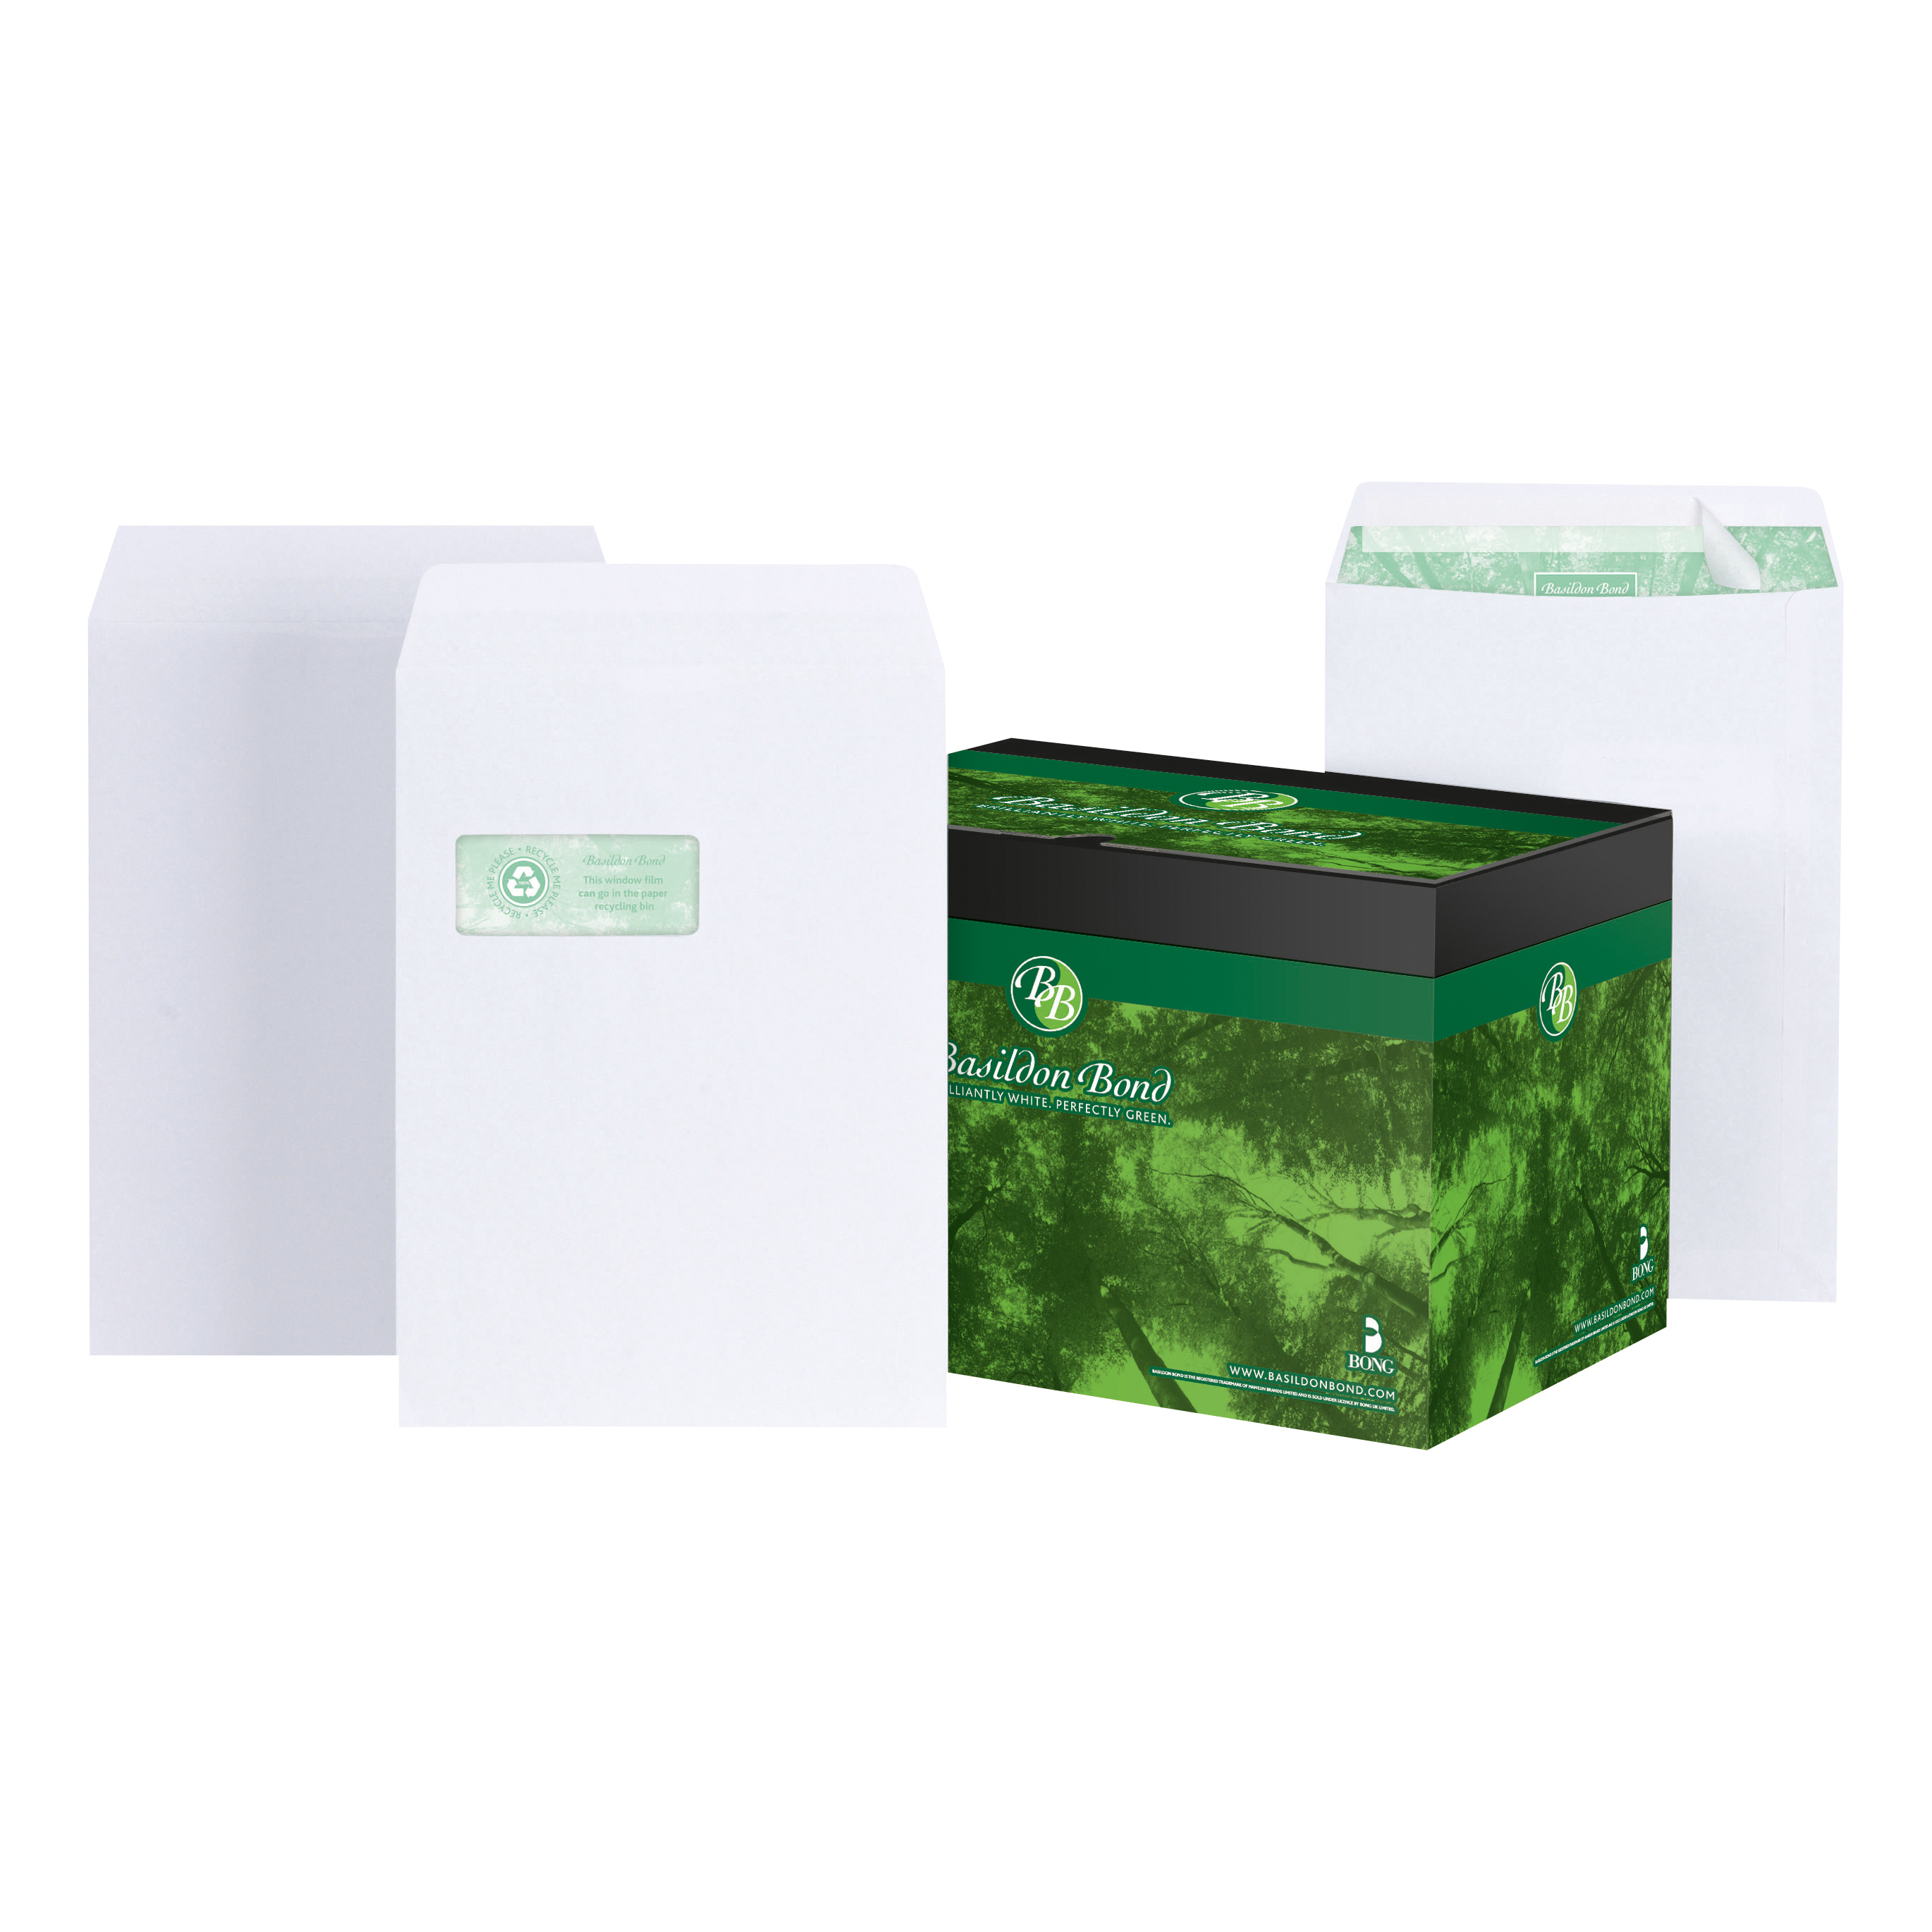 Standard envelopes Basildon Bond Envelopes FSC Recycled Pocket Peel &Seal 120gsm C4 White Ref M80120 Pack 250